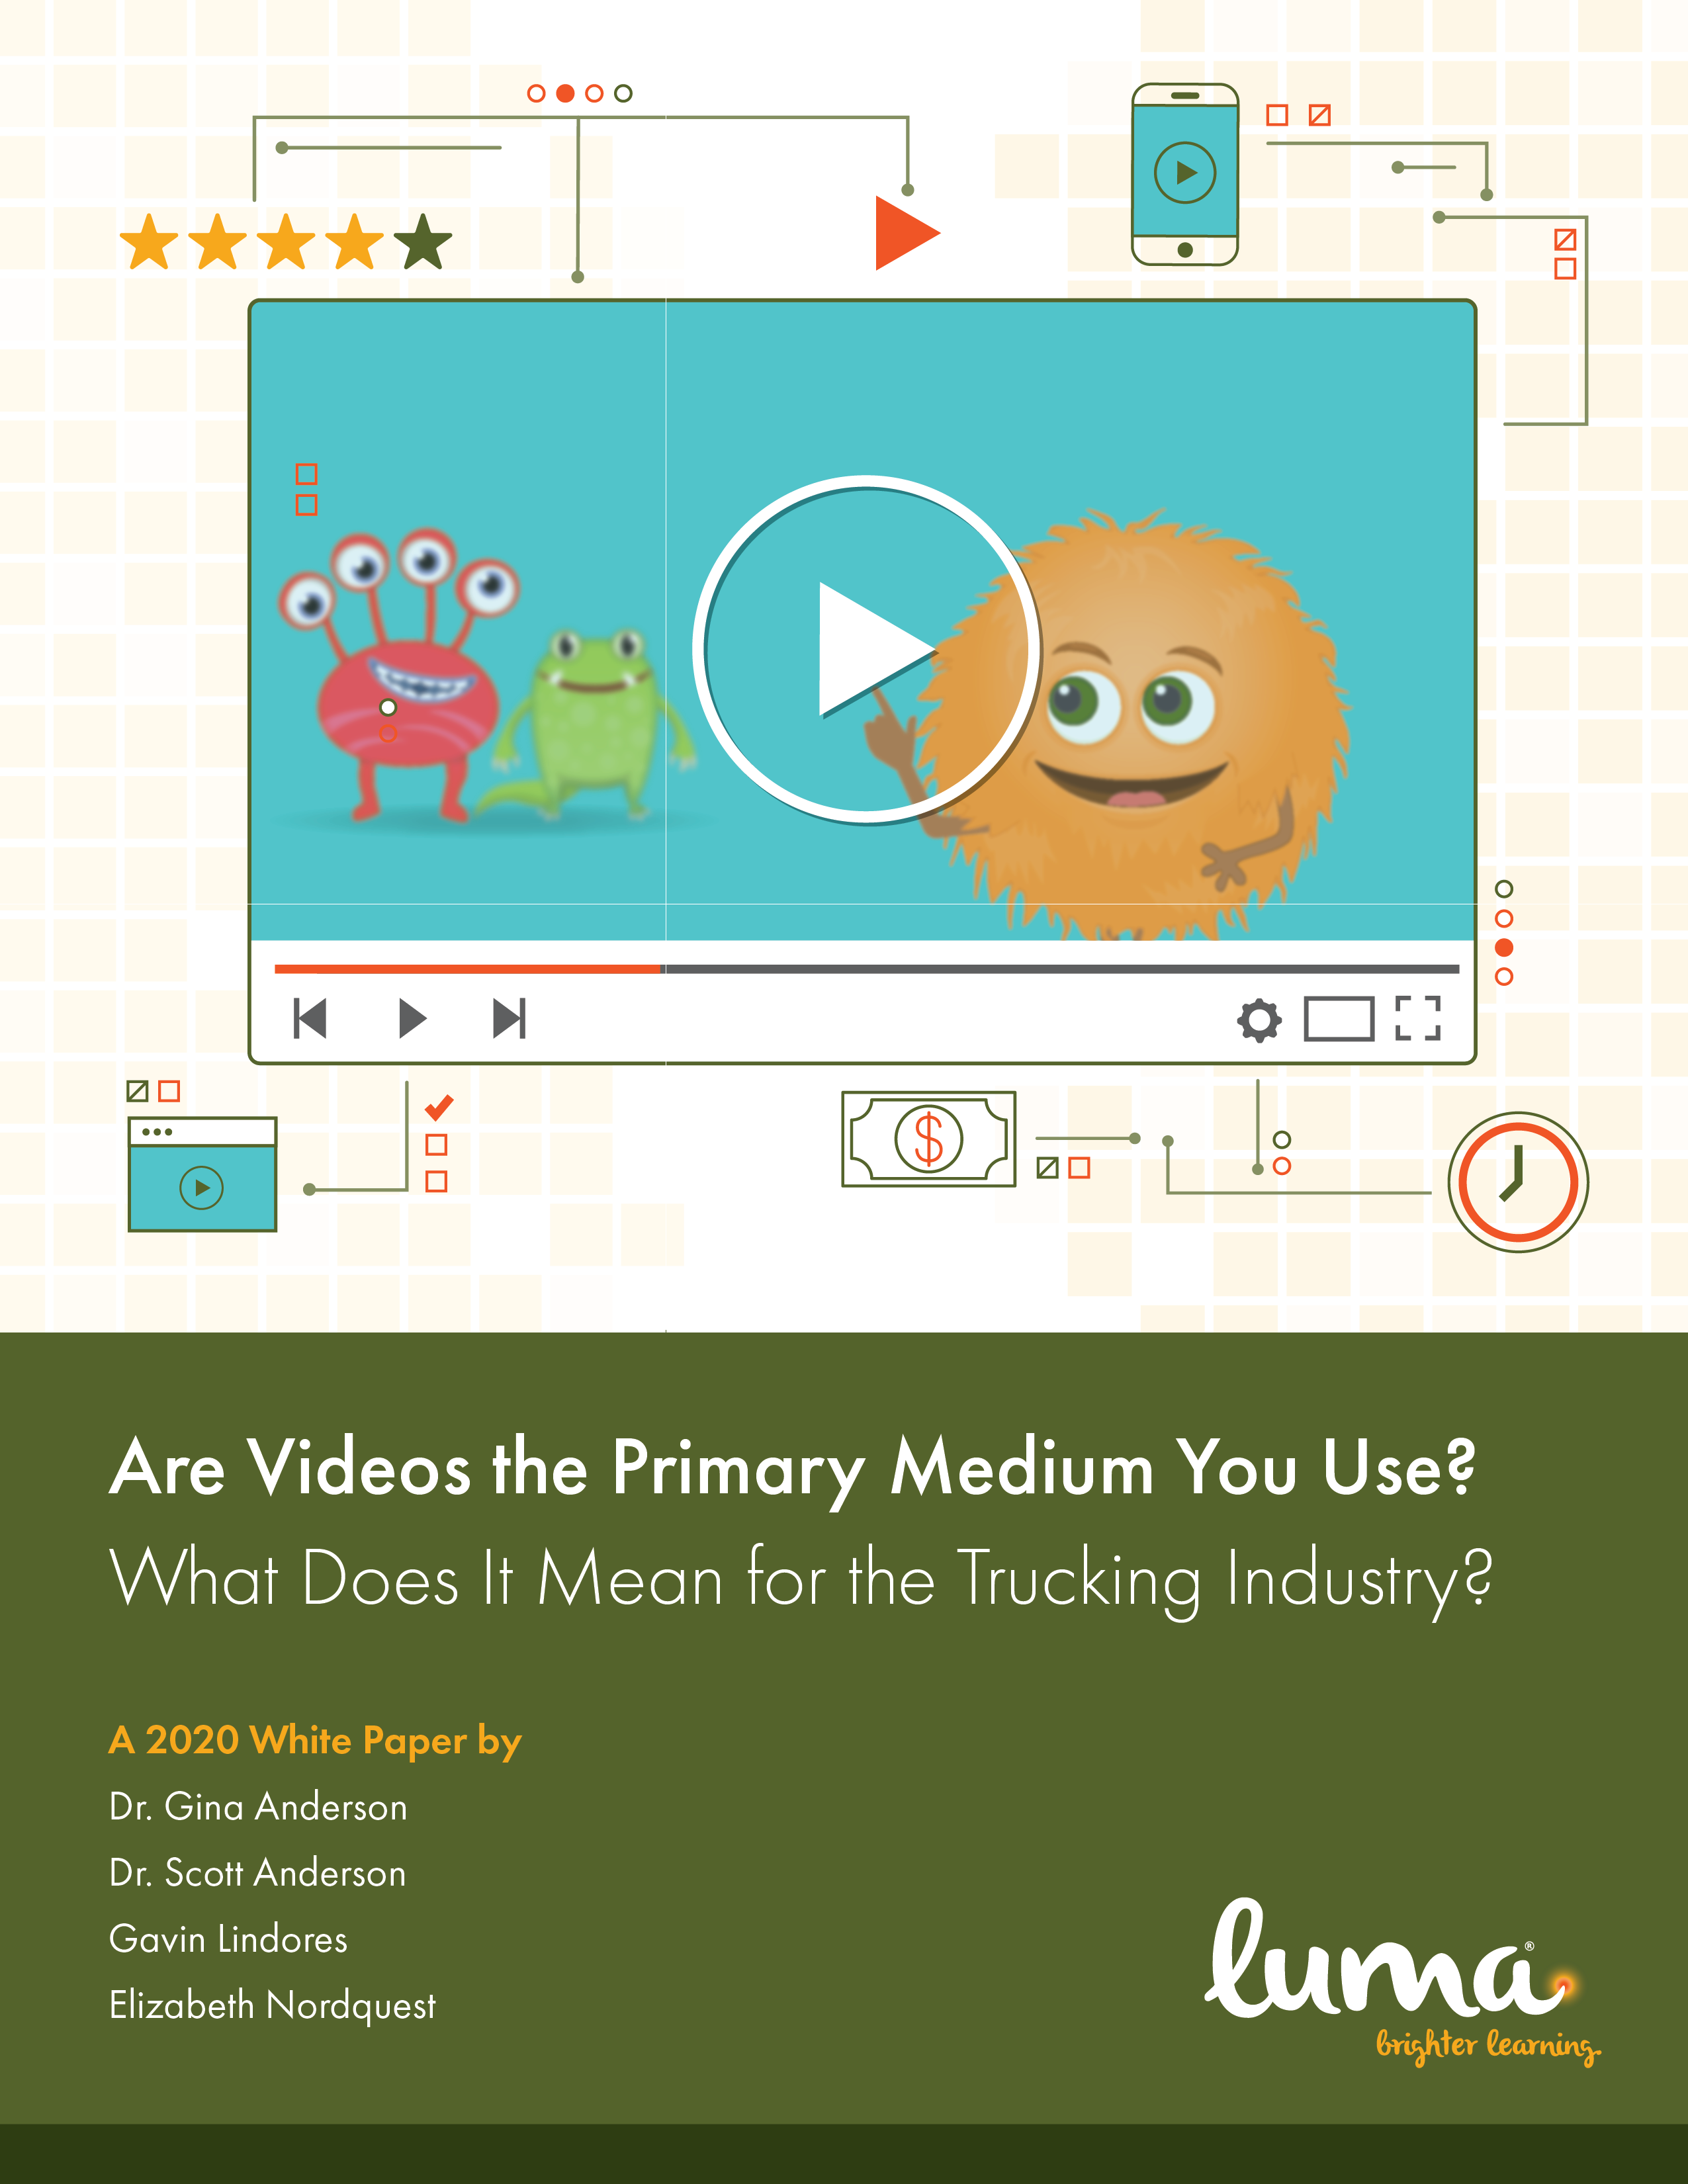 Are Videos the Primary Medium You Use?